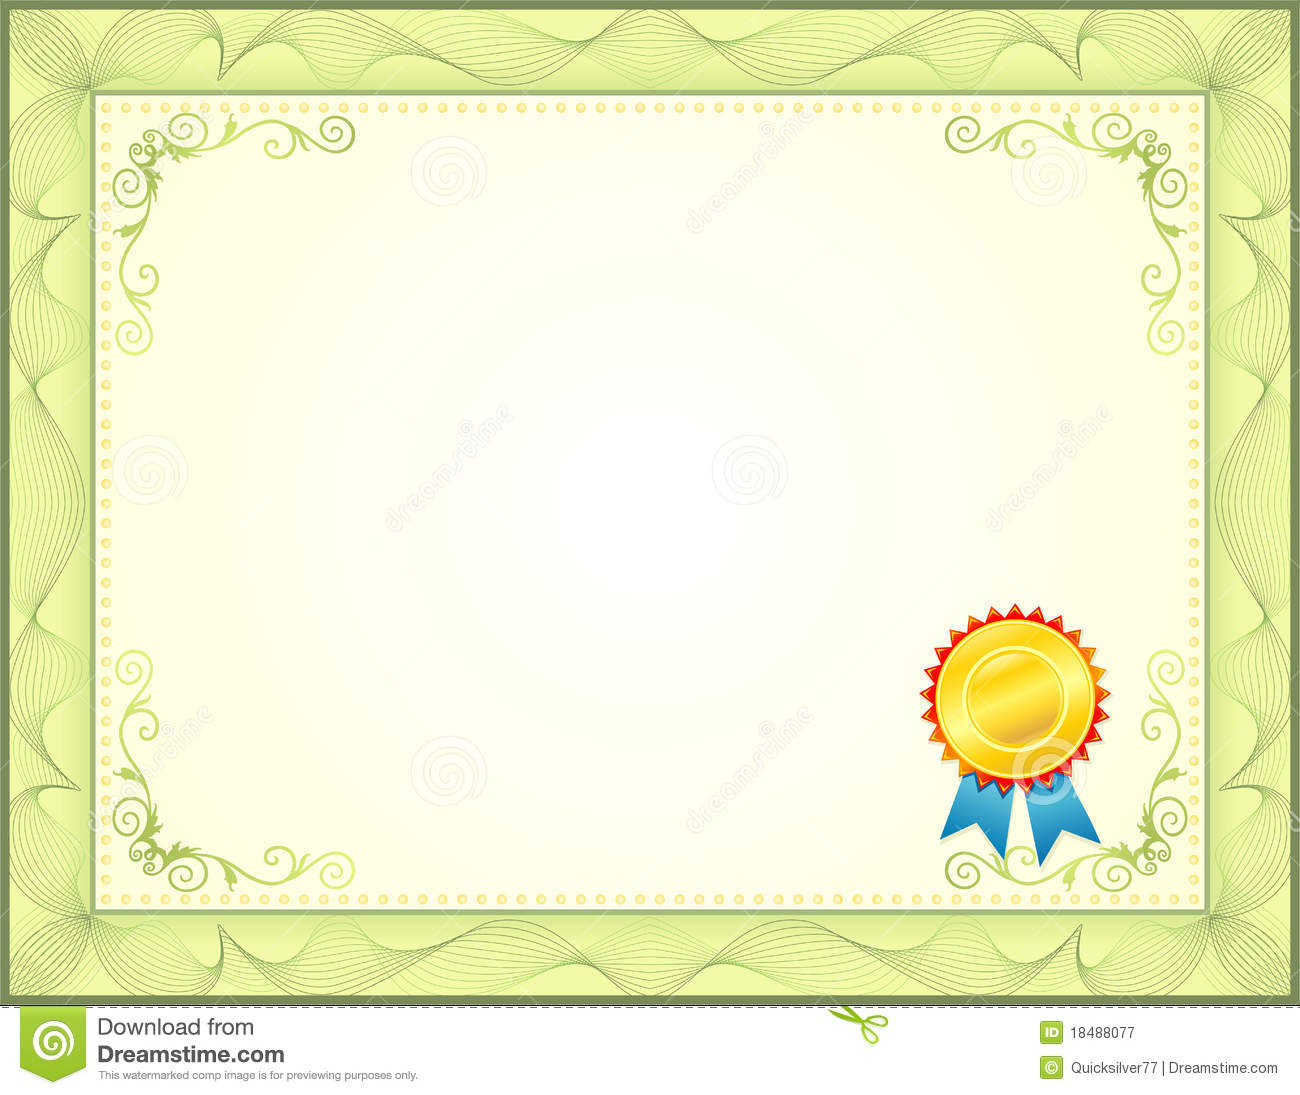 Certificate Royalty Free Stock Photography - Image: 18488077